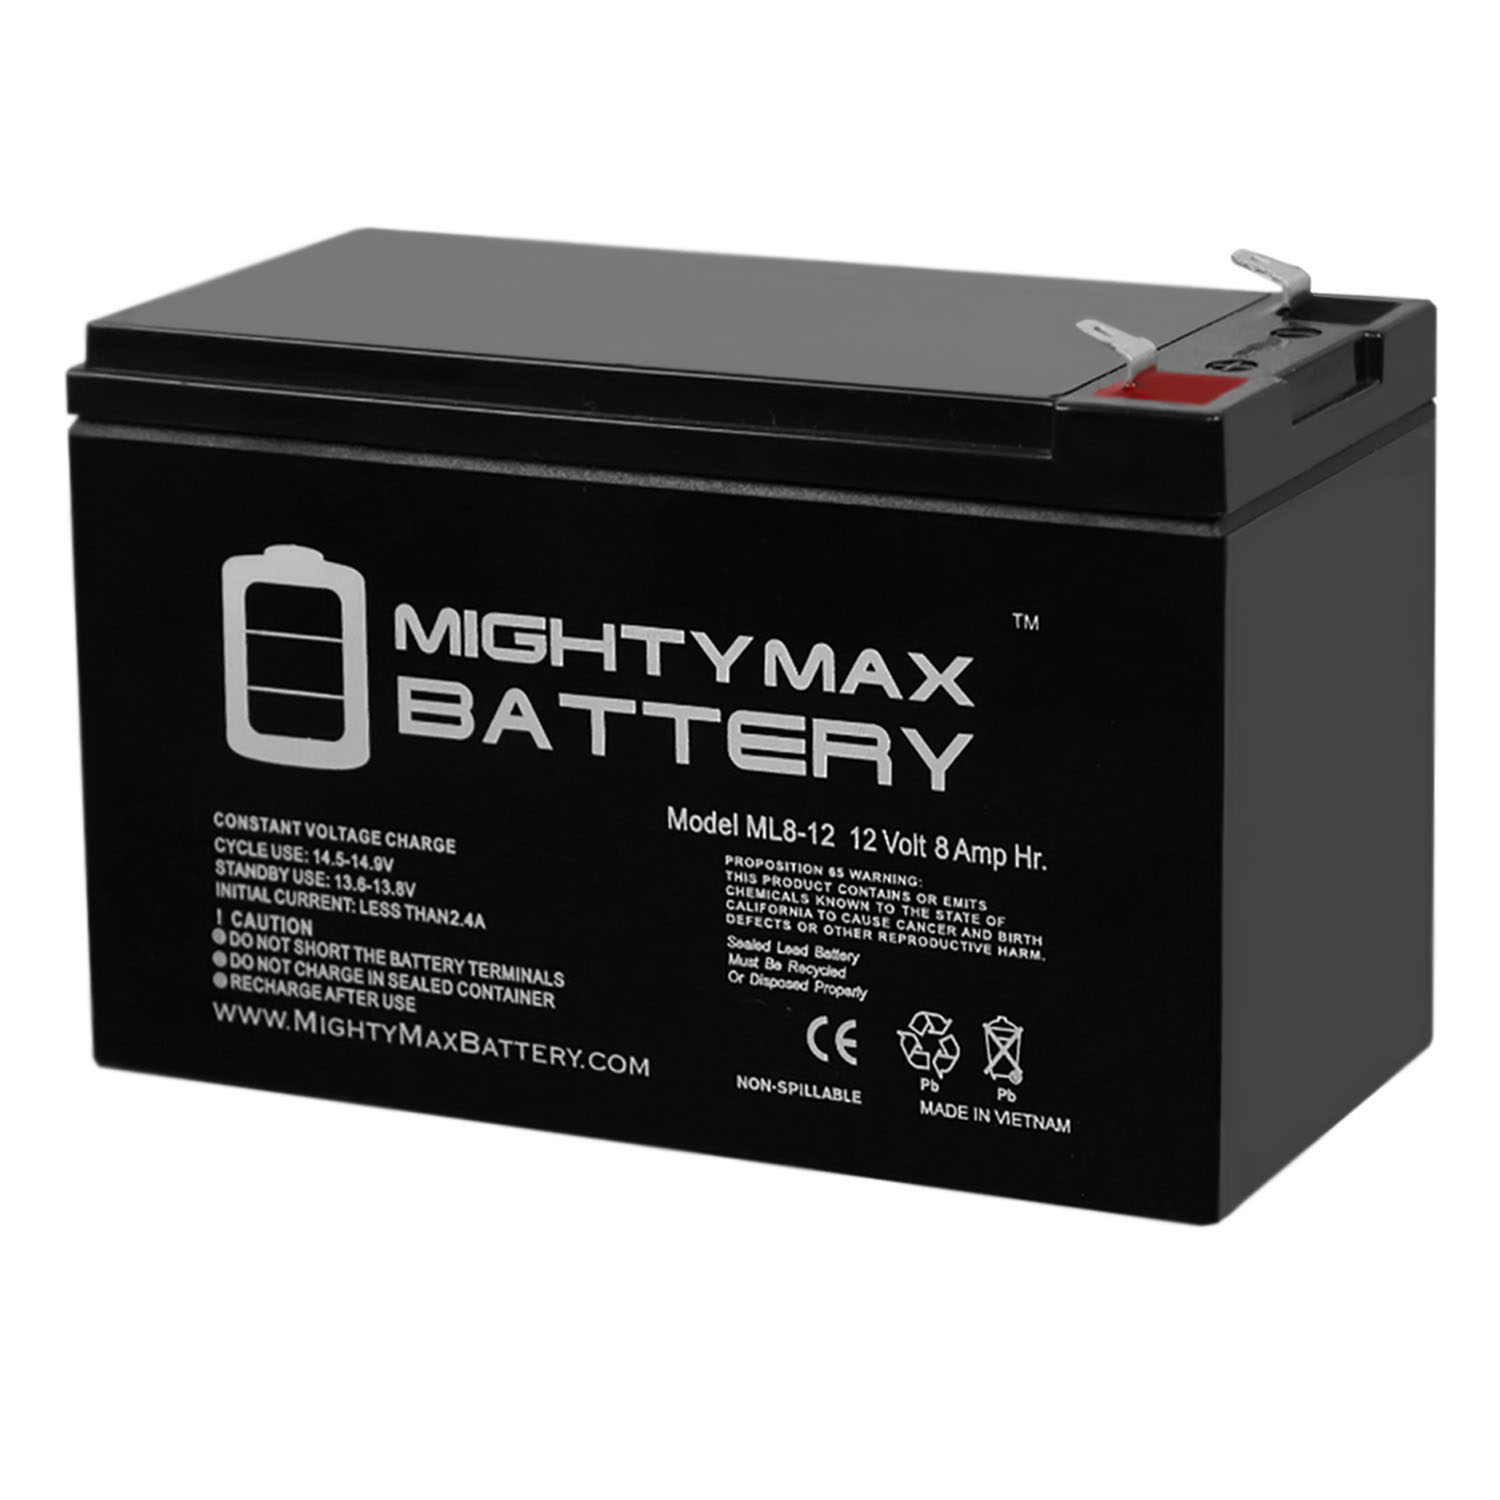 Mighty Max Battery 12V 9Ah Battery Replaces Clary Corporation UPS1800VA1GSBSR 6 Pack Brand Product